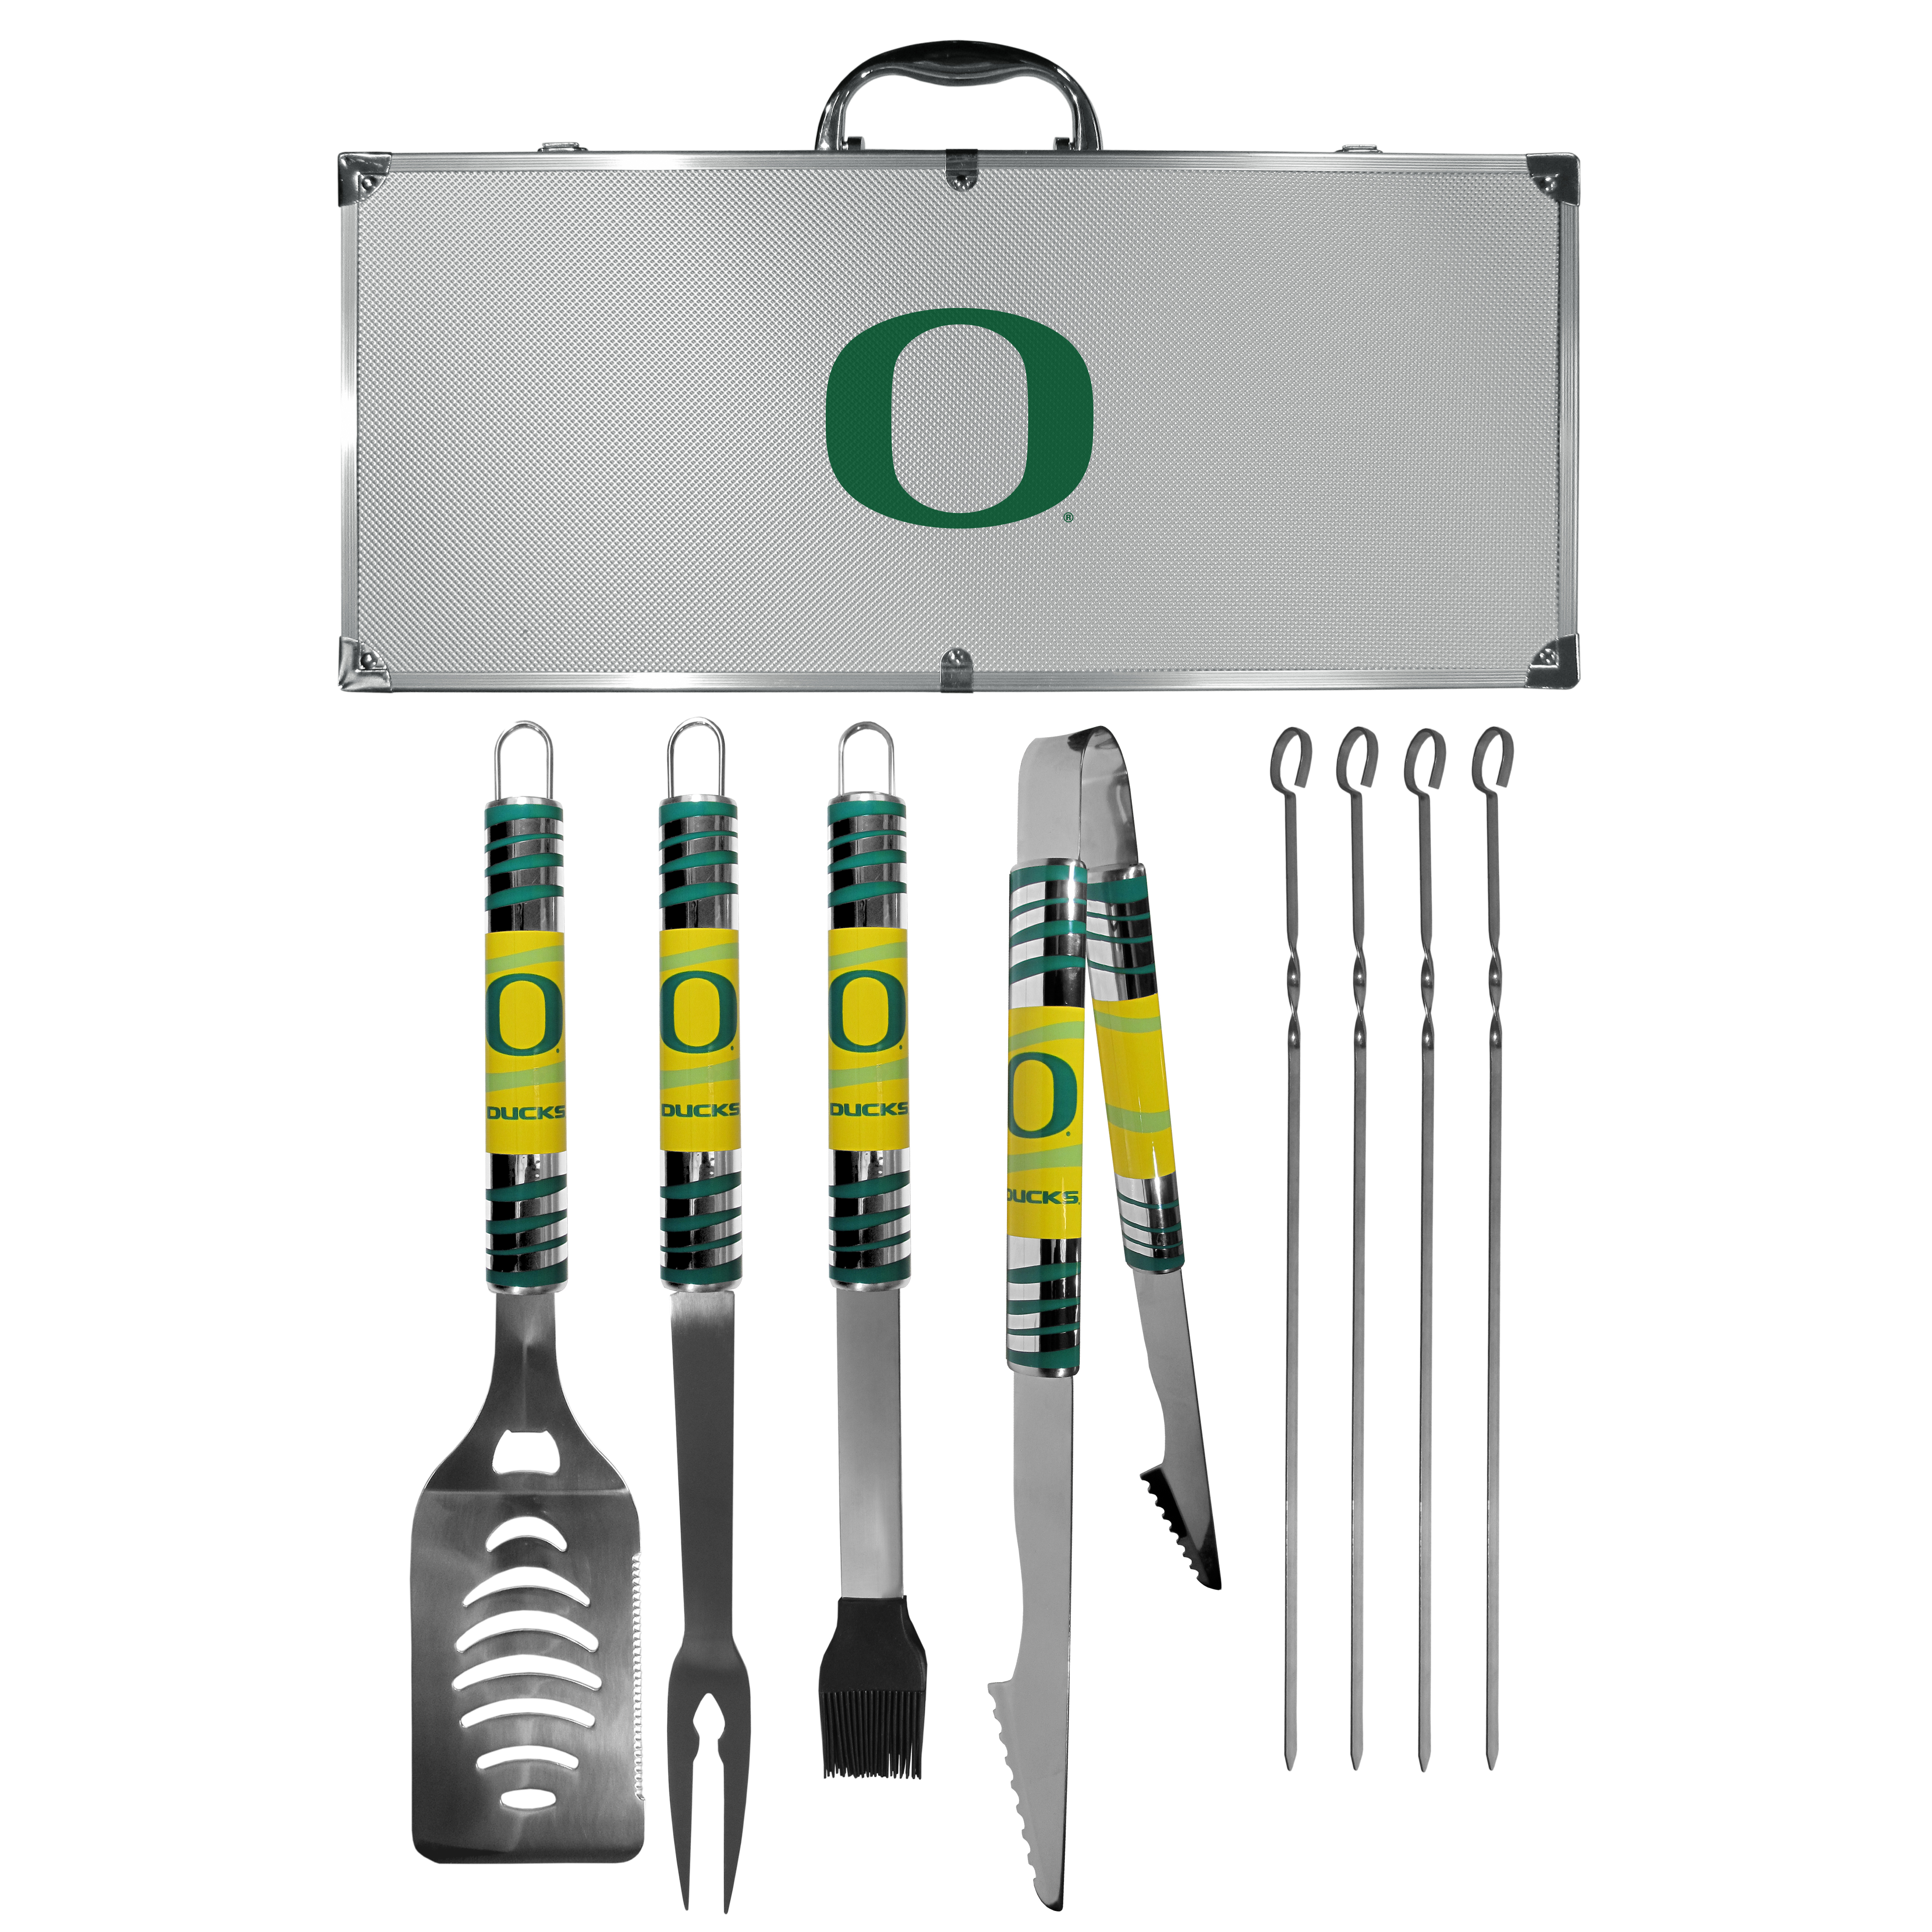 Oregon Ducks 8 pc Tailgater BBQ Set - This is the ultimate Oregon Ducks tailgate accessory! The high quality, 420 grade stainless steel tools are durable and well-made enough to make even the pickiest grill master smile. This complete grill accessory kit includes; 4 skewers, spatula with bottle opener and serrated knife edge, basting brush, tongs and a fork. The 18 inch metal carrying case is perfect for great outdoor use making grilling an ease while camping, tailgating or while having a game day party on your patio. The tools are 17 inches long and feature vivid team graphics. The metal case features a large team emblem with exceptional detail. This high-end men's gift is sure to be a hit as a present on Father's Day or Christmas.